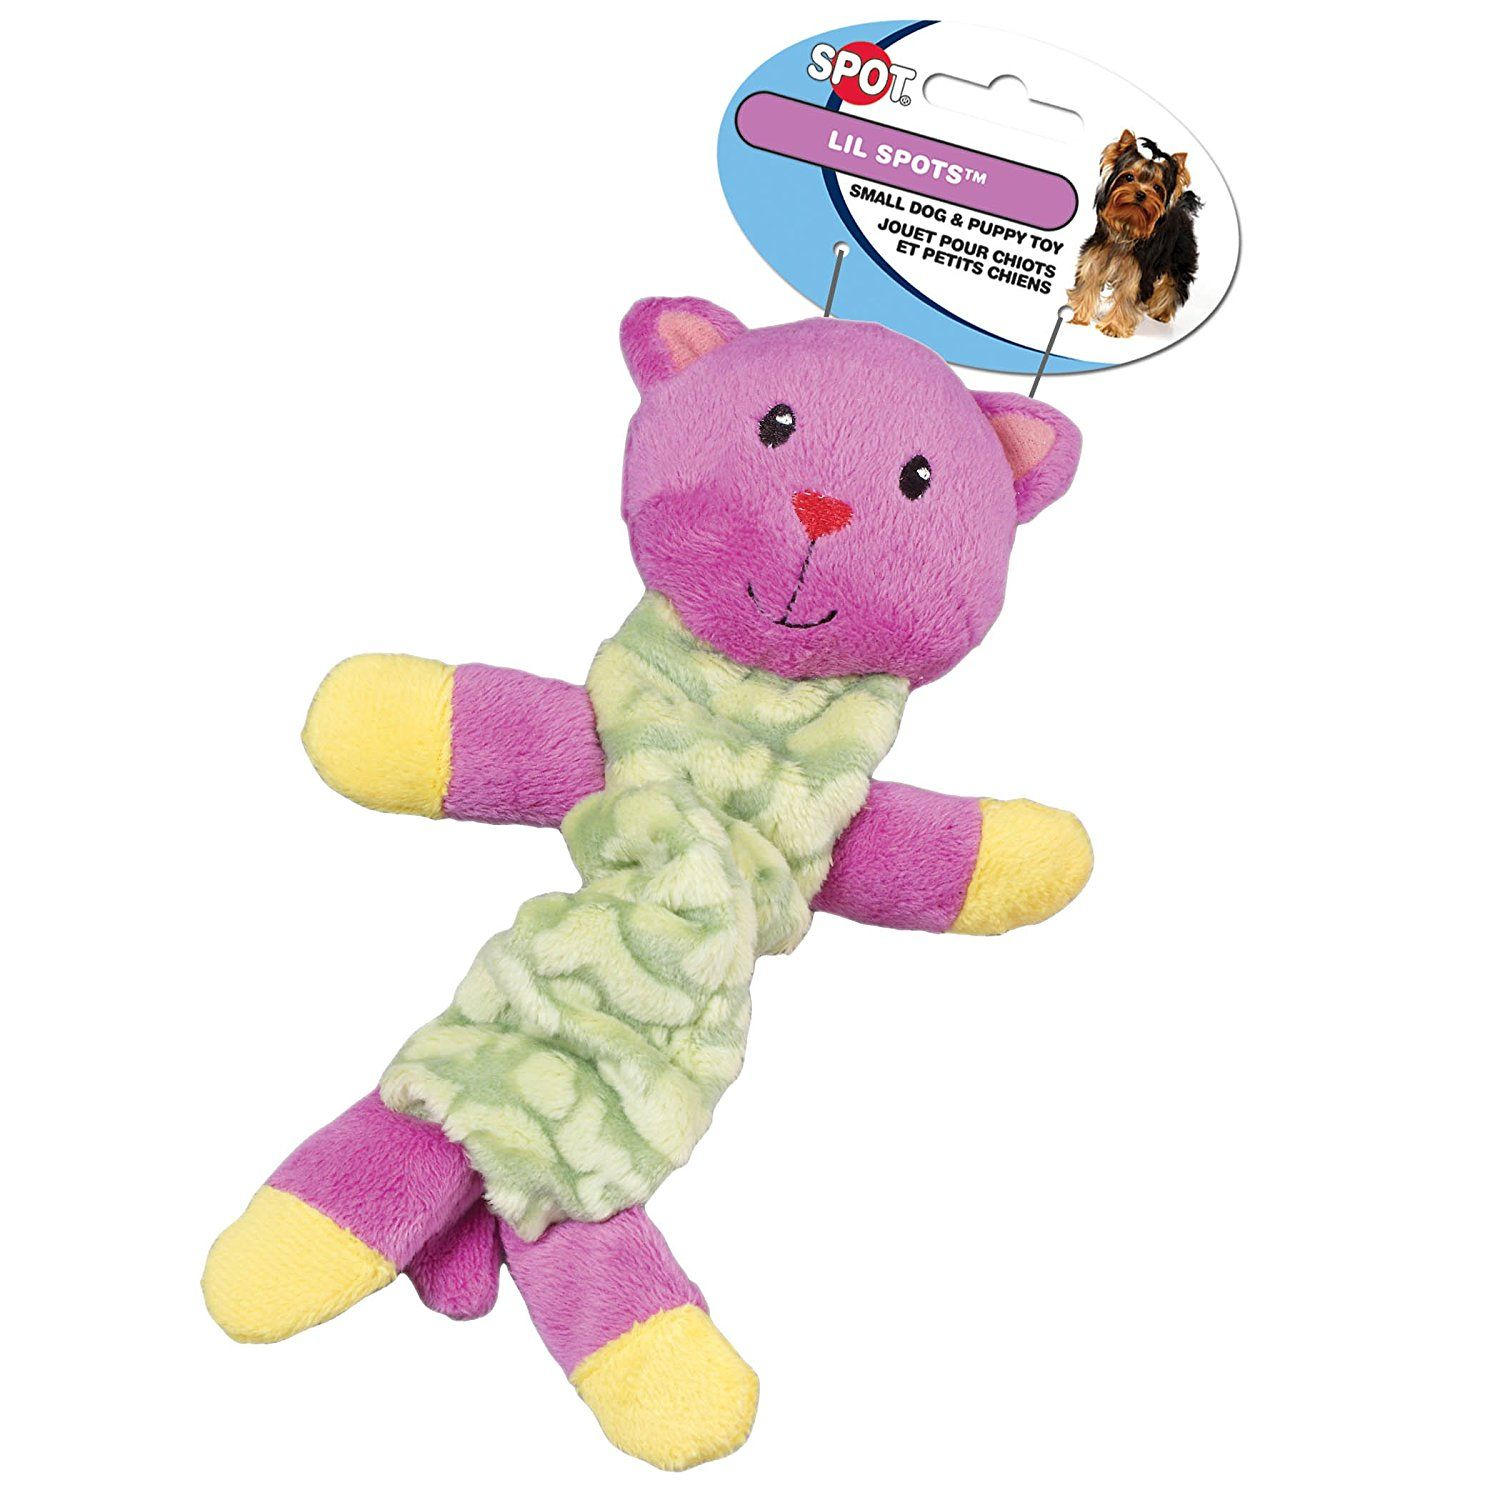 Ethical Pet Lil Spots Plush Bungee Toys for Small Dogs and Puppies